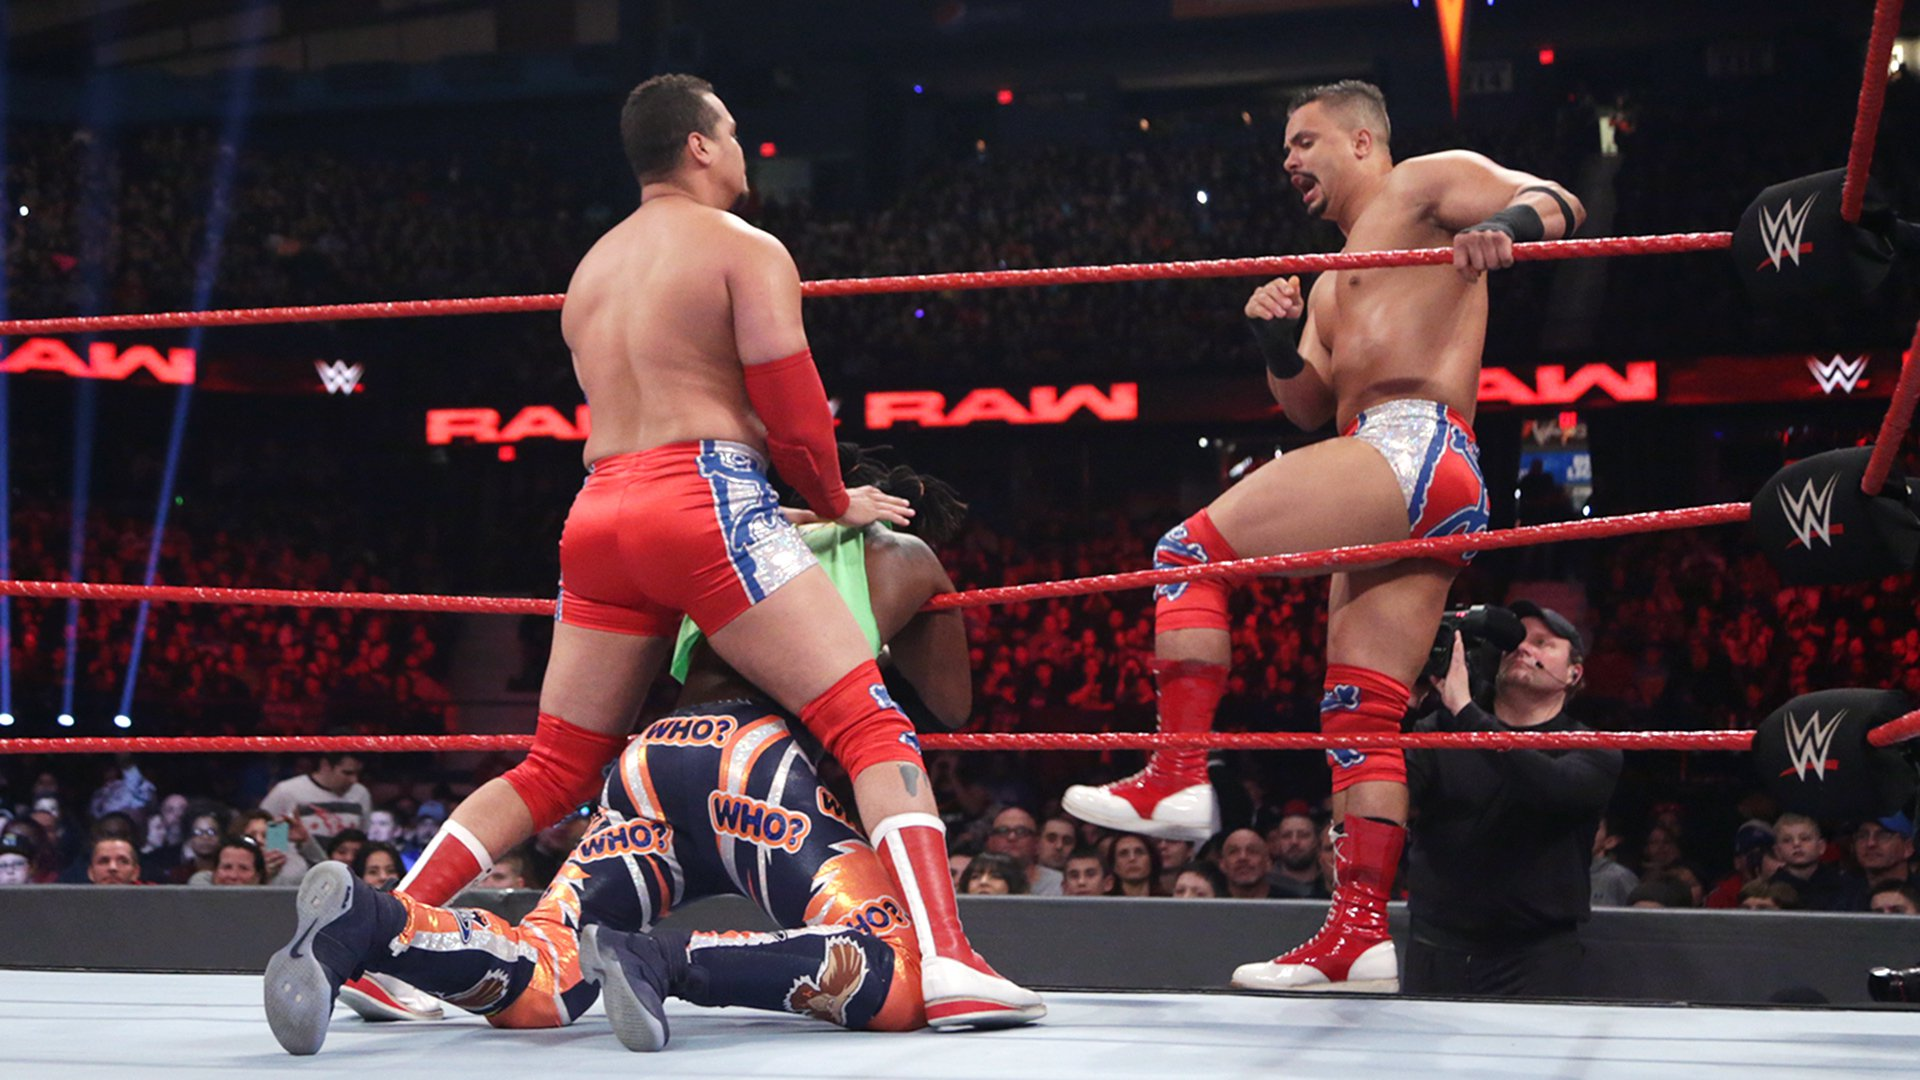 define rencontrer The New Day vs. The Shining Stars: photos